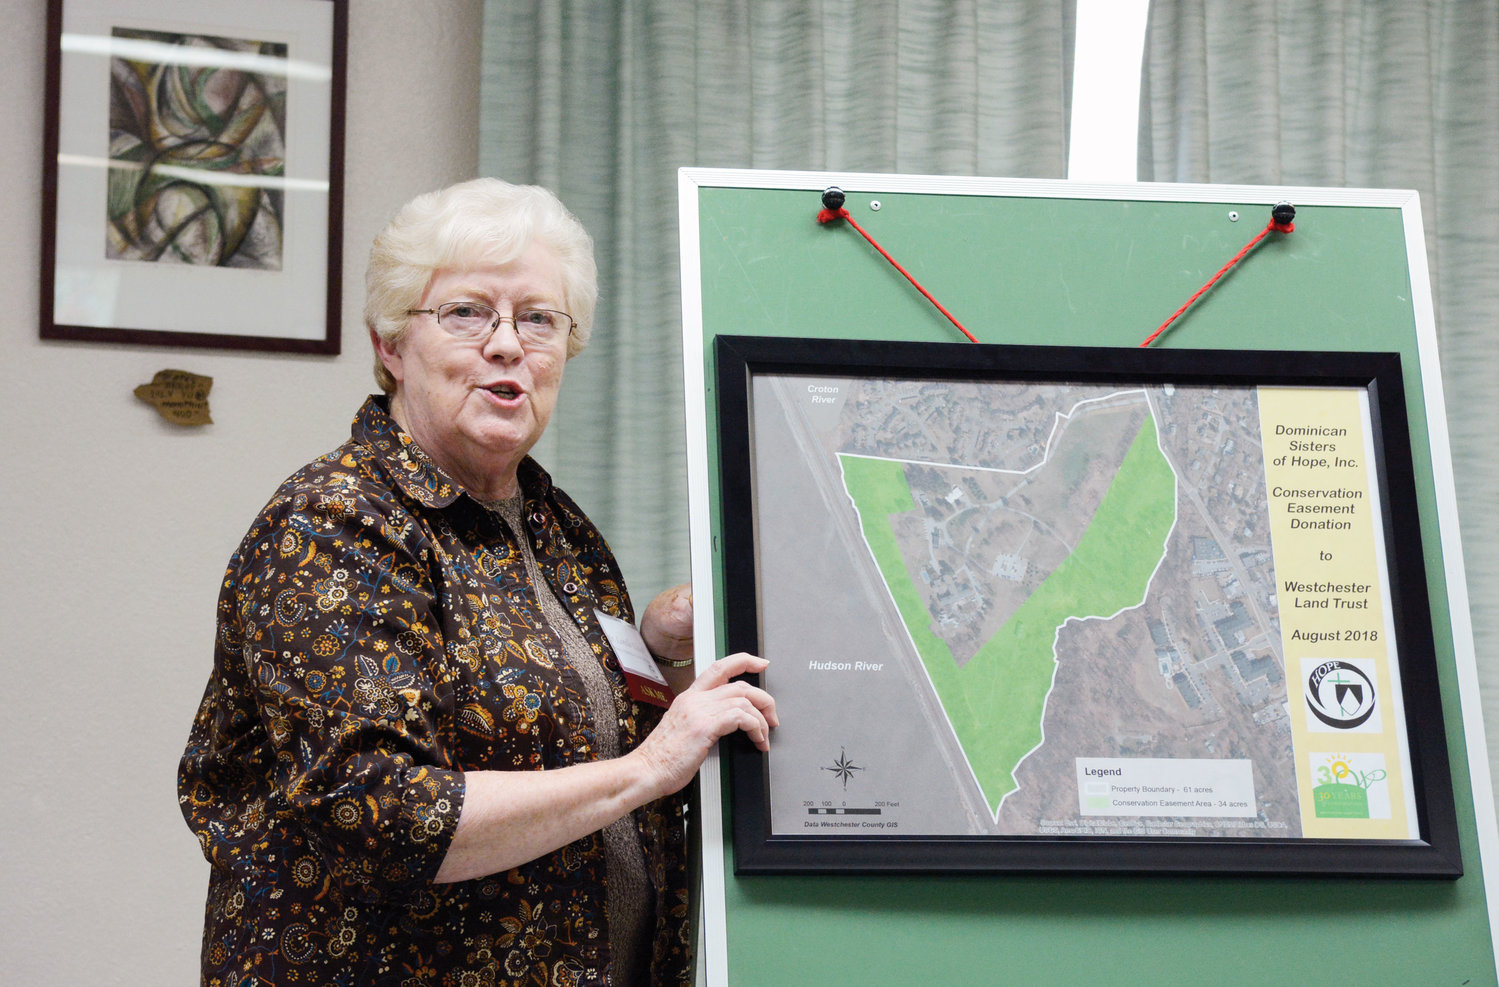 Sister Lorelle Elcock, O.P., prioress of the Dominican Sisters of Hope, discusses the conservation easement, using a map of the property, at the press conference.